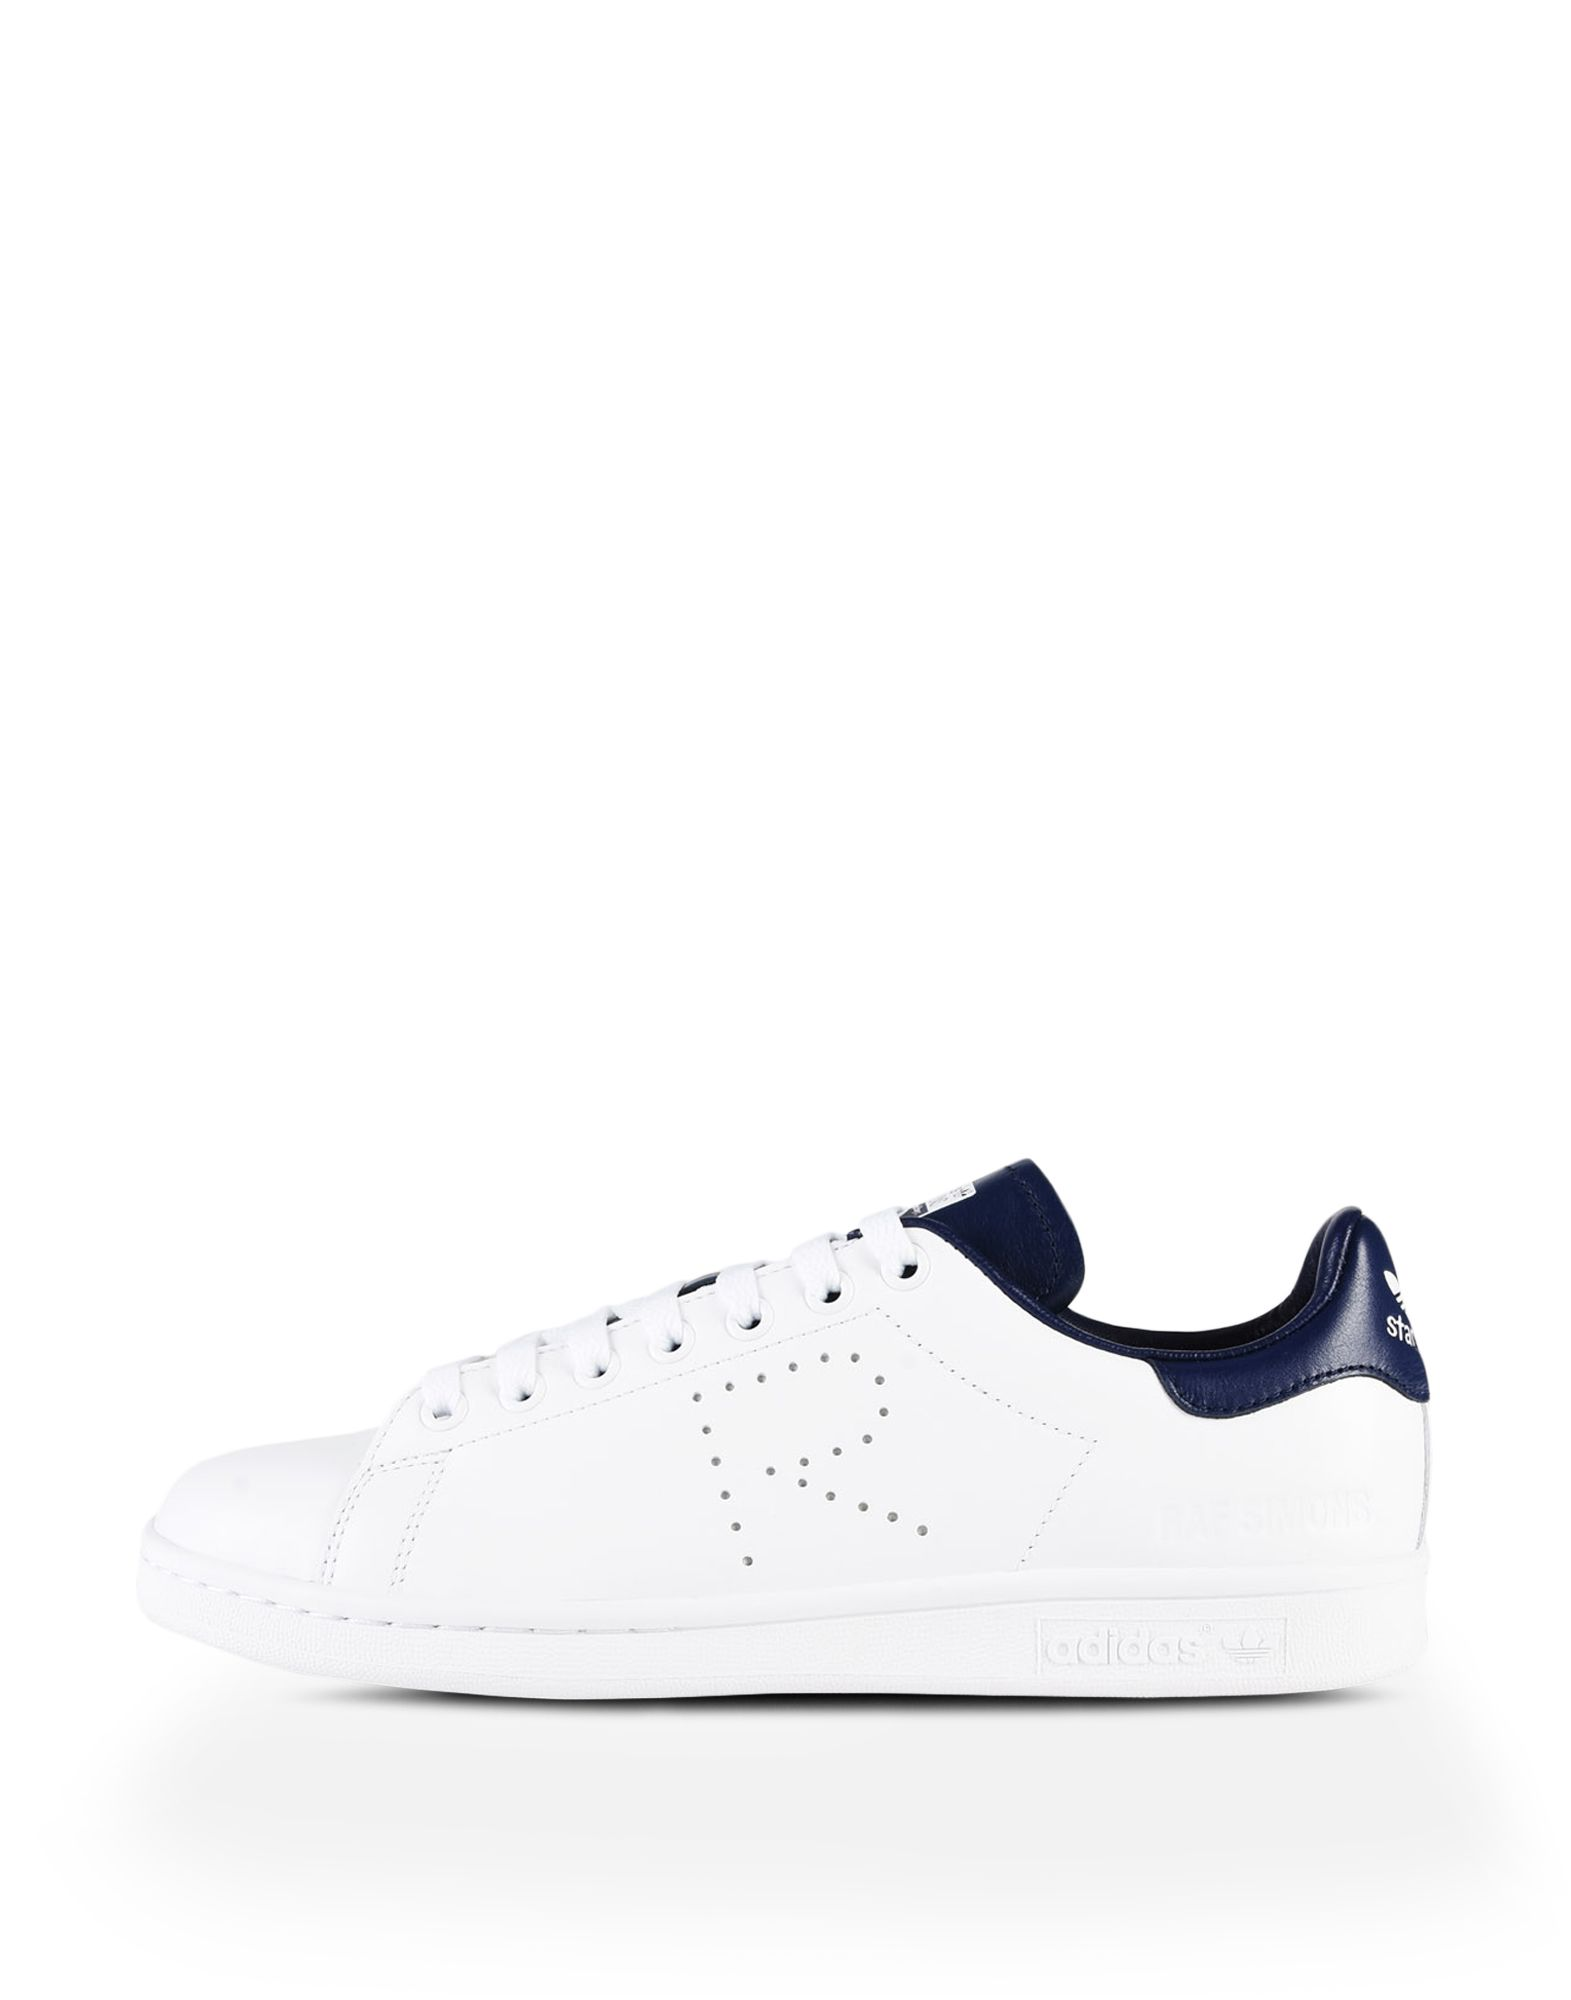 meet 63116 a5d47 RS STAN SMITH Sneakers | Adidas Y-3 Official Site